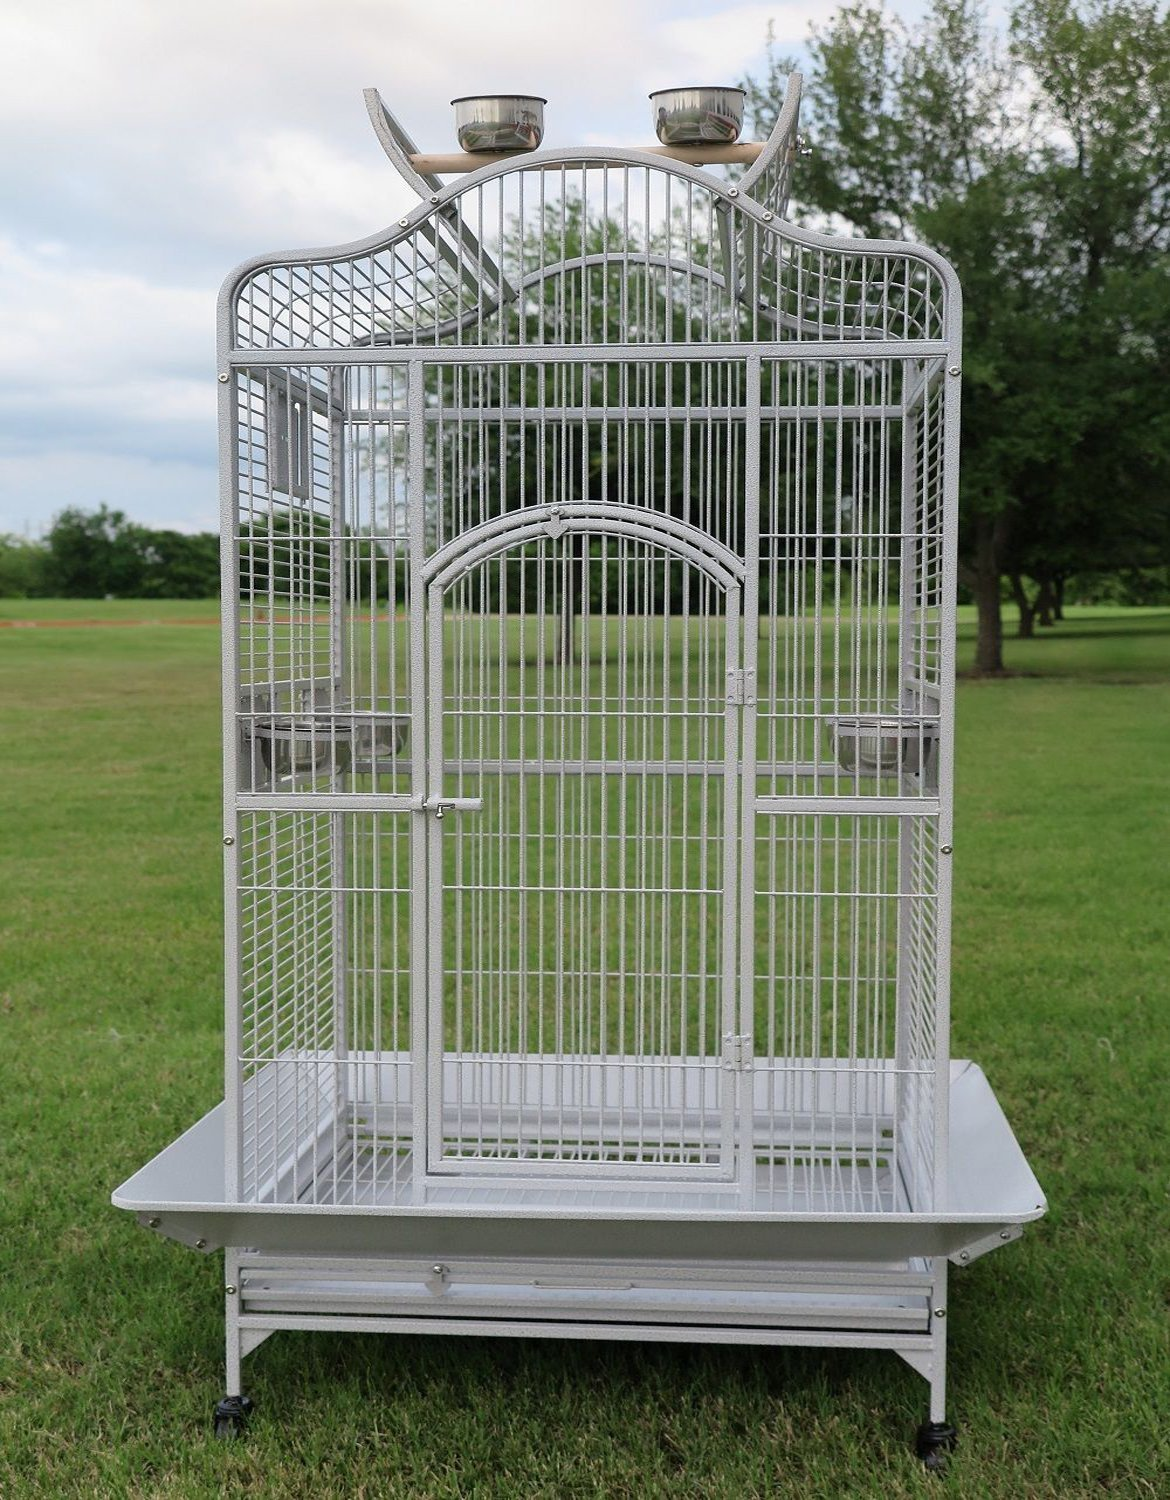 New Large Wrought Iron Open/Close Play Top Bird Parrot Cage, Include Metal Seed Guard Solid Metal Feeder Nest Doors Include Metal Seed Guard Solid Metal Feeder Nest Doors Overall Dimensions: 35.25Wx29.5x62H(With Seed Skirt) by Mcage